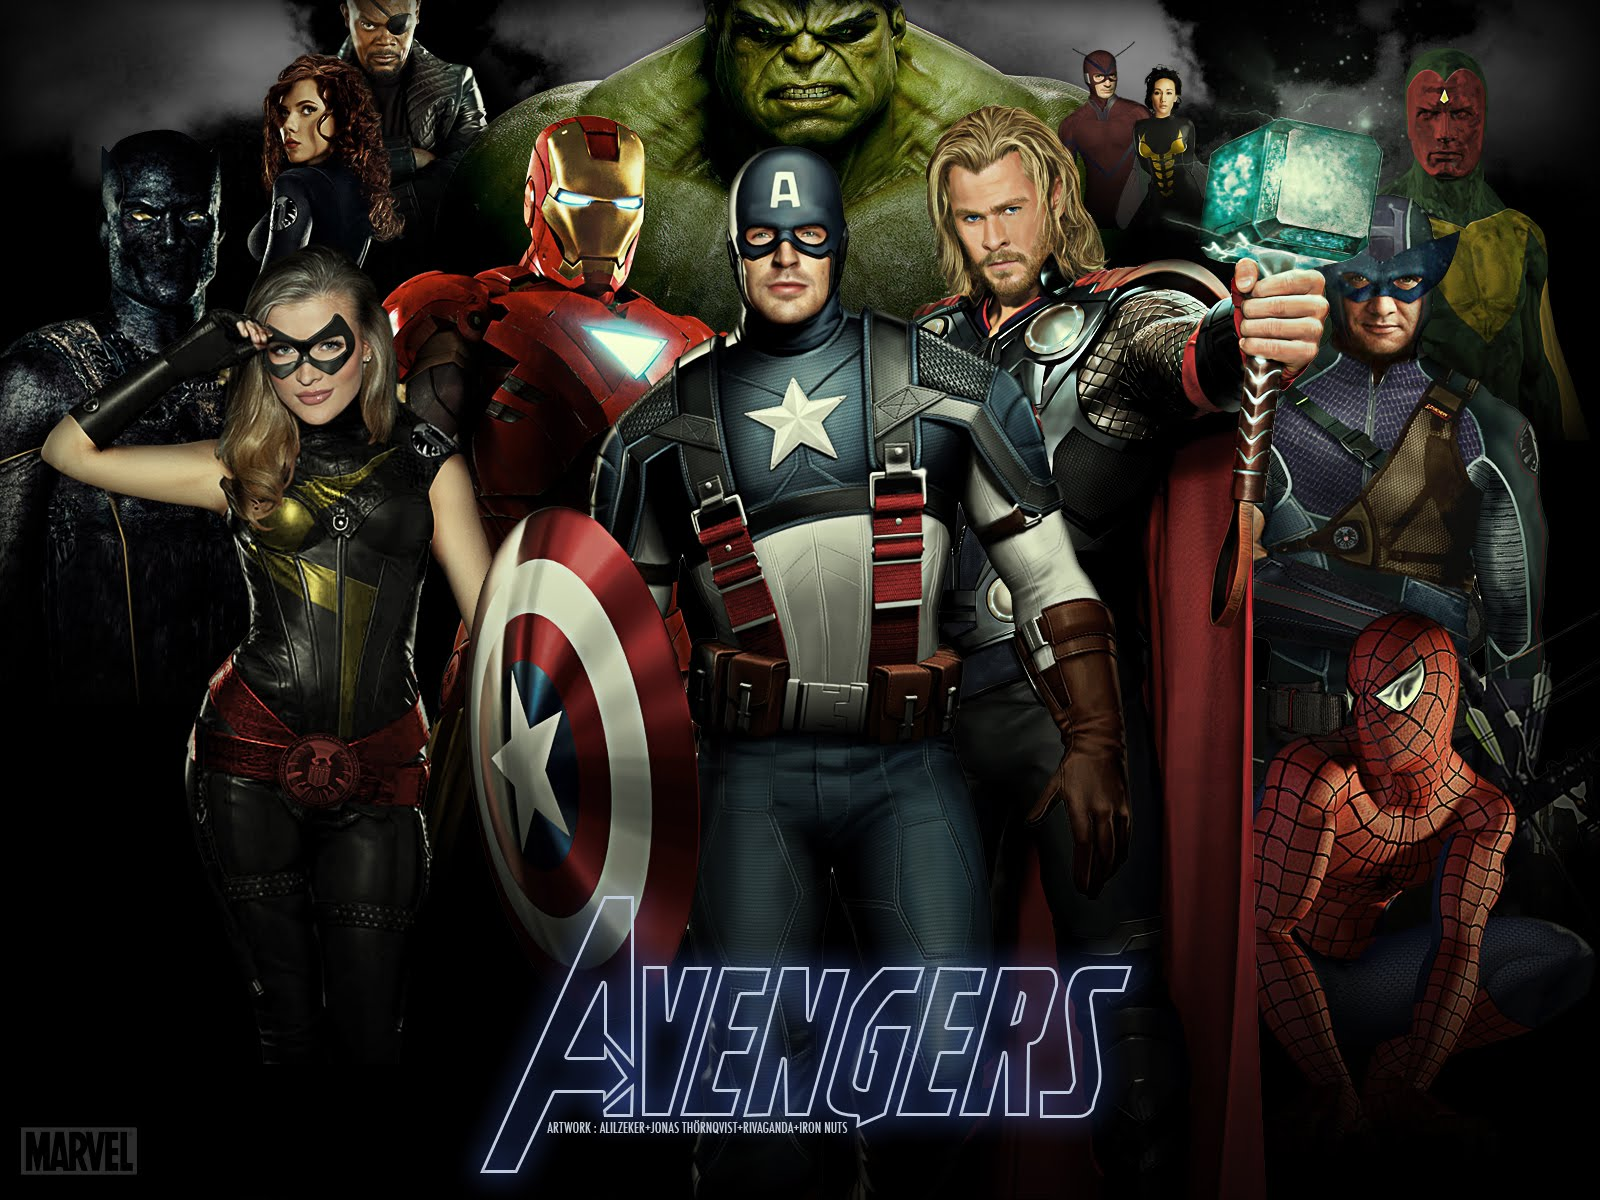 http://4.bp.blogspot.com/-xFC5DfM9d2g/TcXIkLCAWtI/AAAAAAAAAVo/bbOxAVwi2wA/s1600/1301228683-Avengers-Wallpaper-v2-by-ALilZeker-Featuring-Marvels-Captain-America-Thor-Iron-Man-Spider-Man-Black-Widow-Nick-Fury-More.jpg